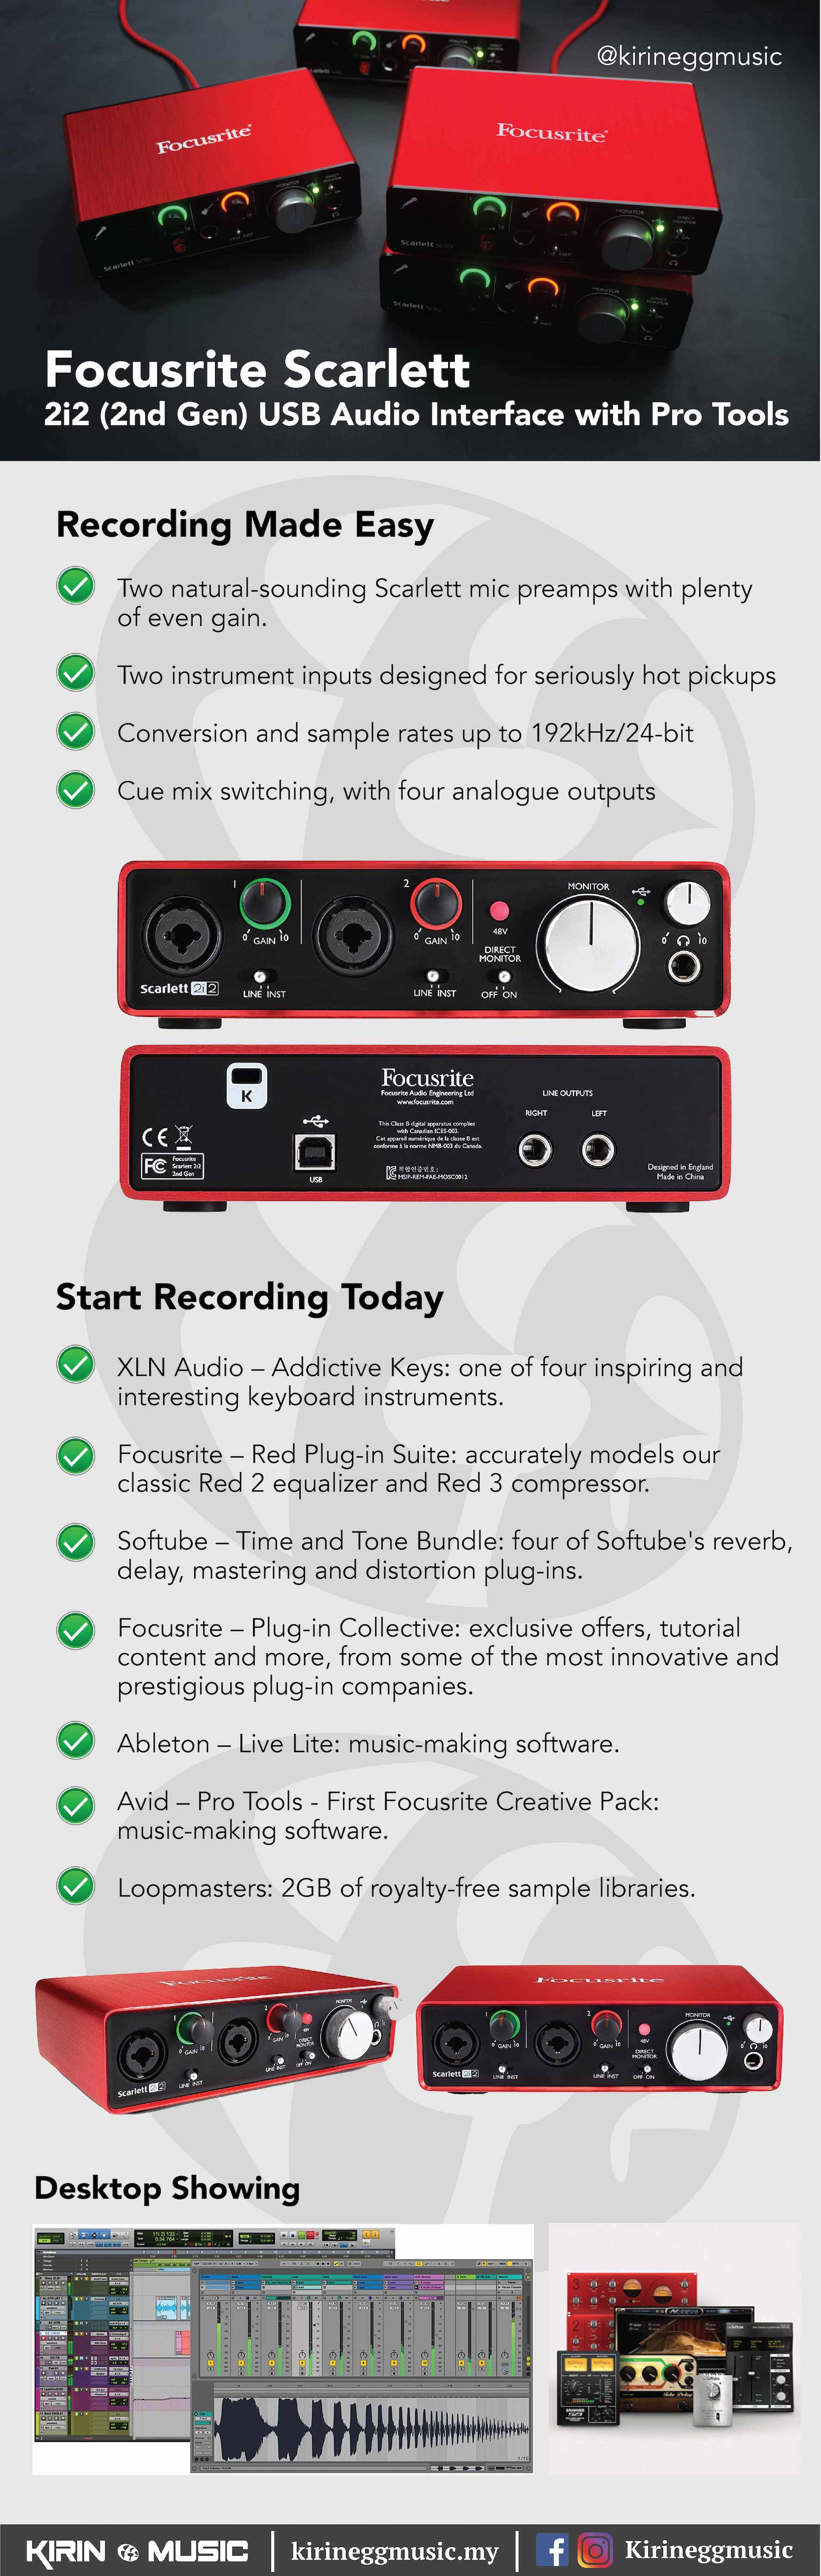 Focusrite Interface / Recording System, 2i2 (2nd Gen) with Solfware, Music Record